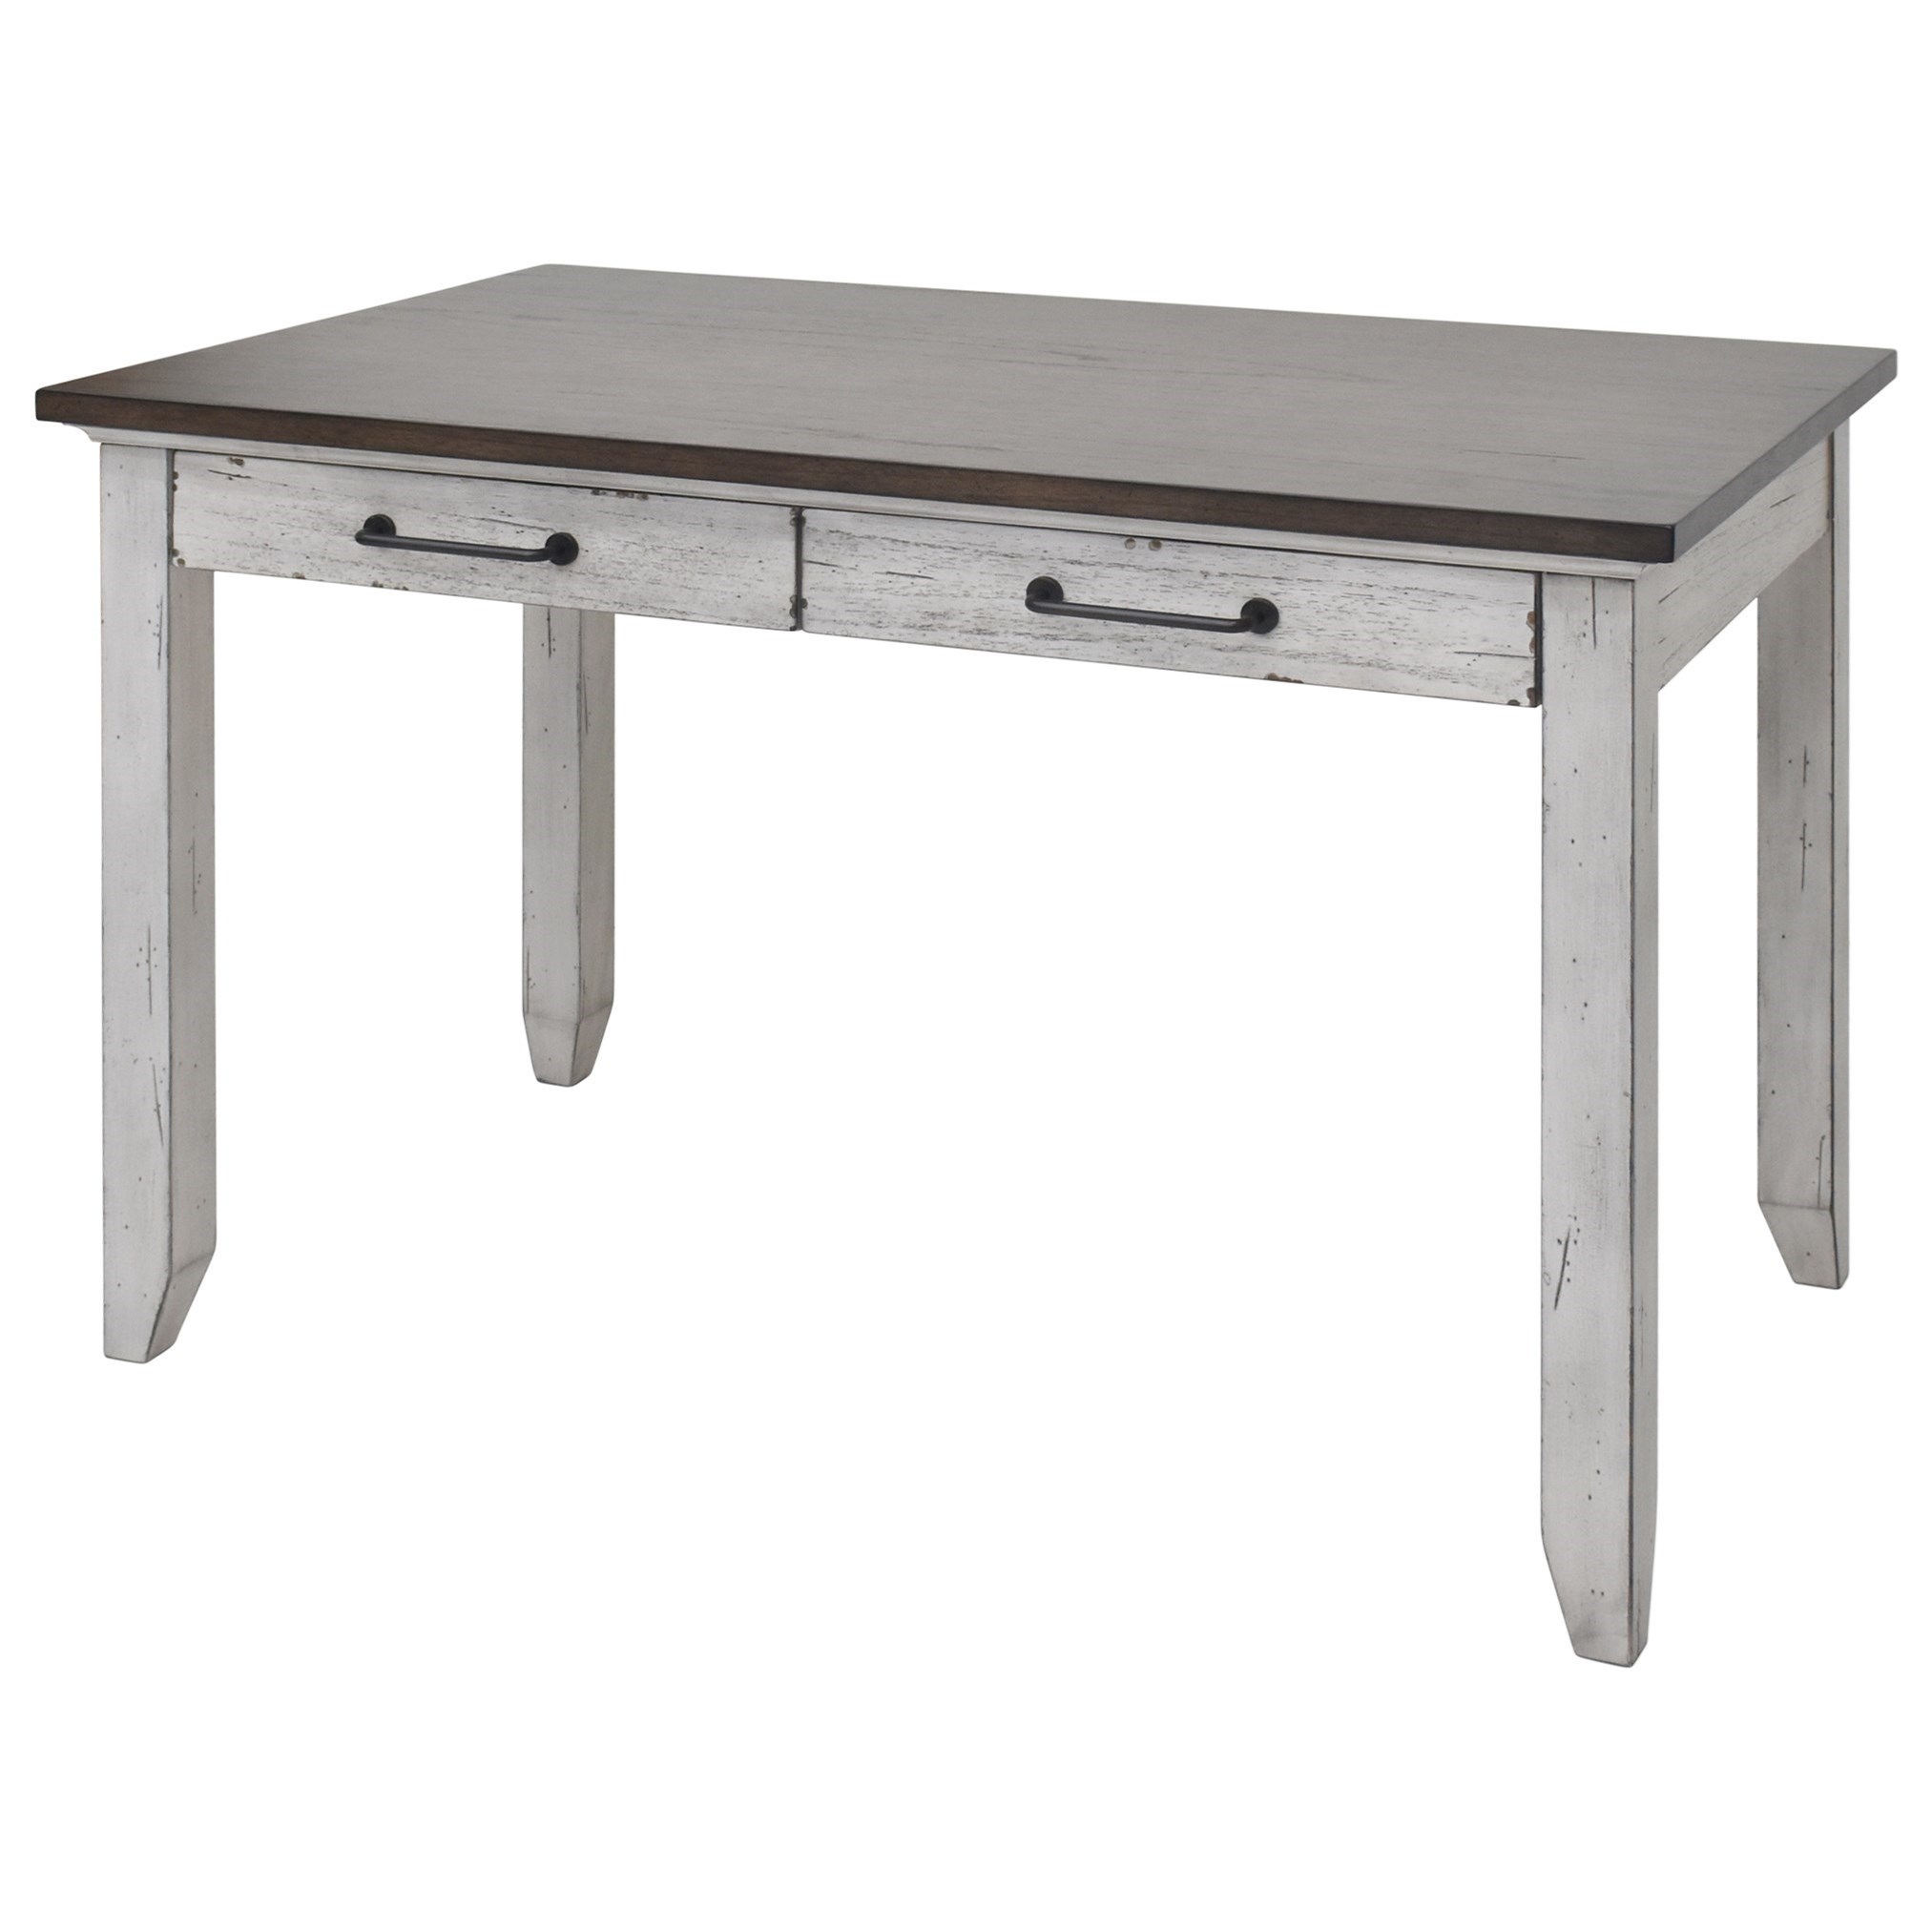 Multi-Function Table